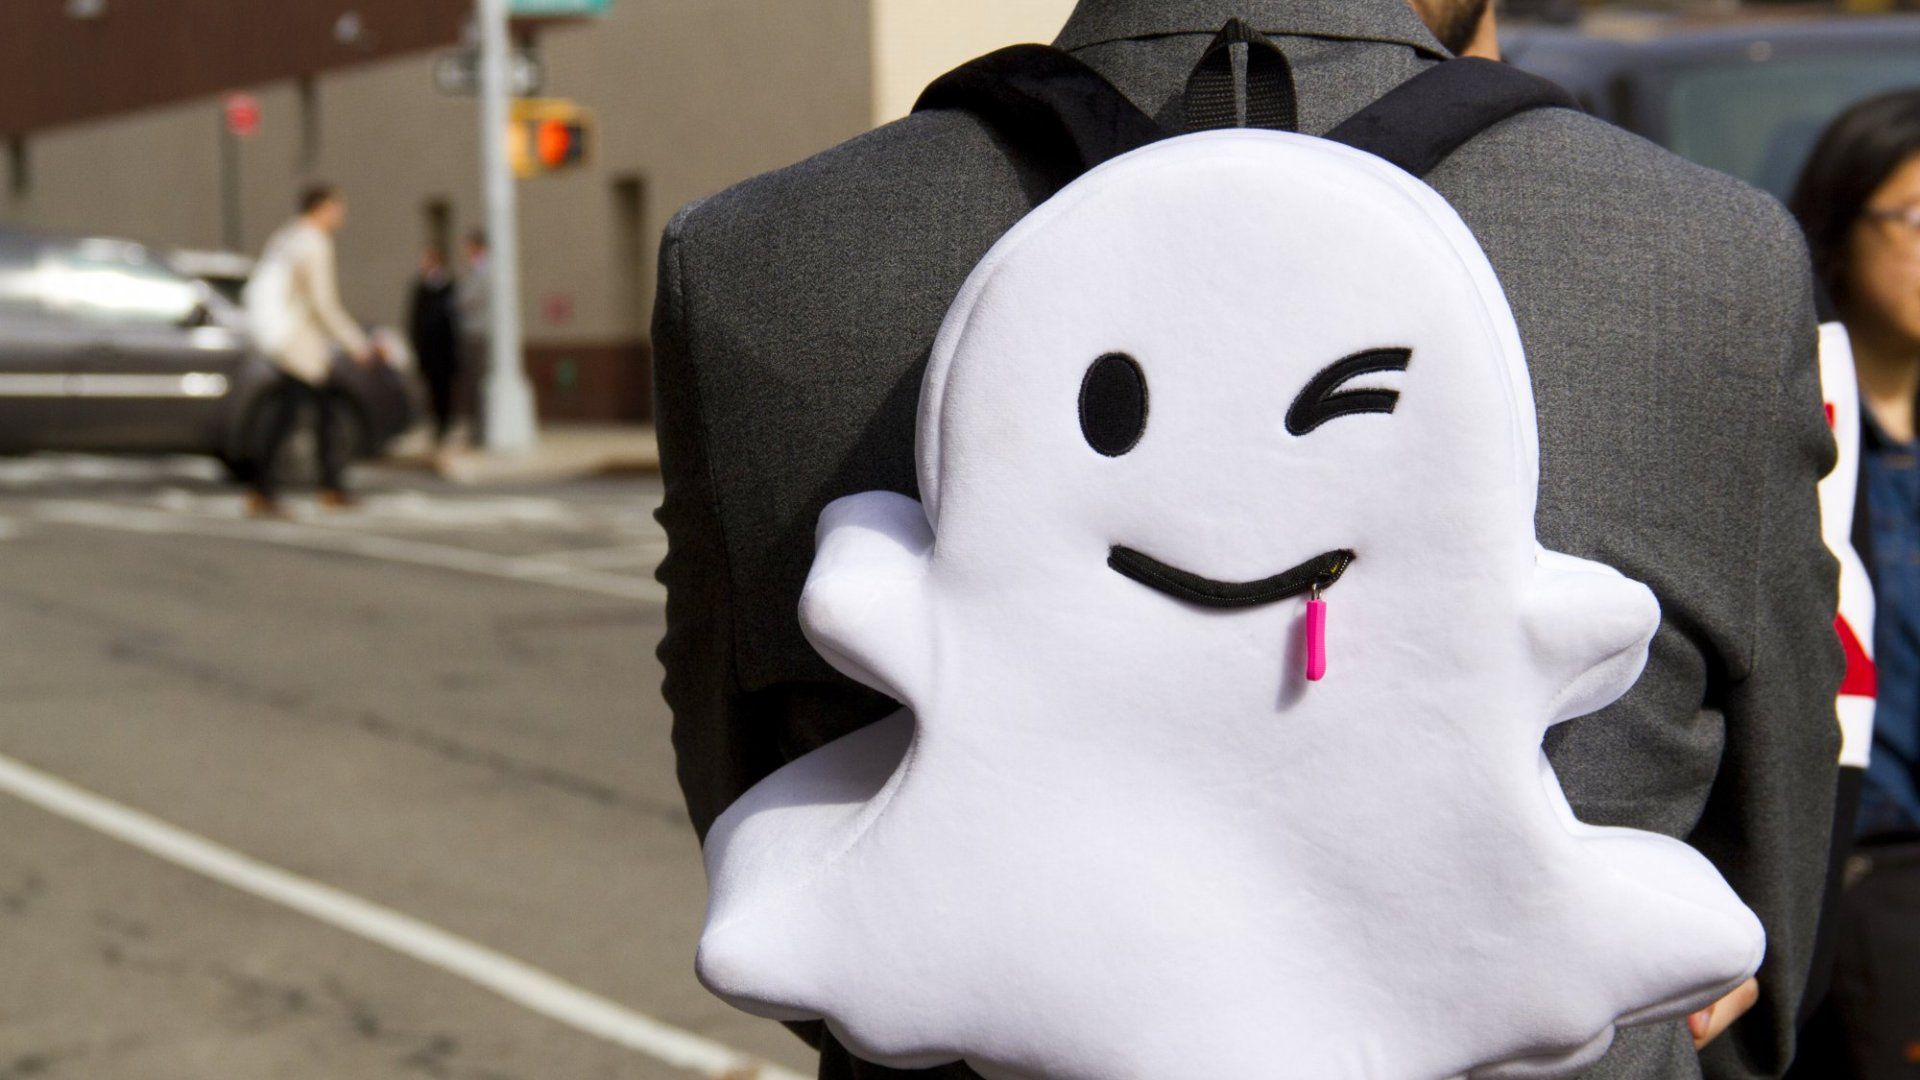 Still Not Taking Snapchat Seriously? Their Newest Feature Should Make You Reconsider